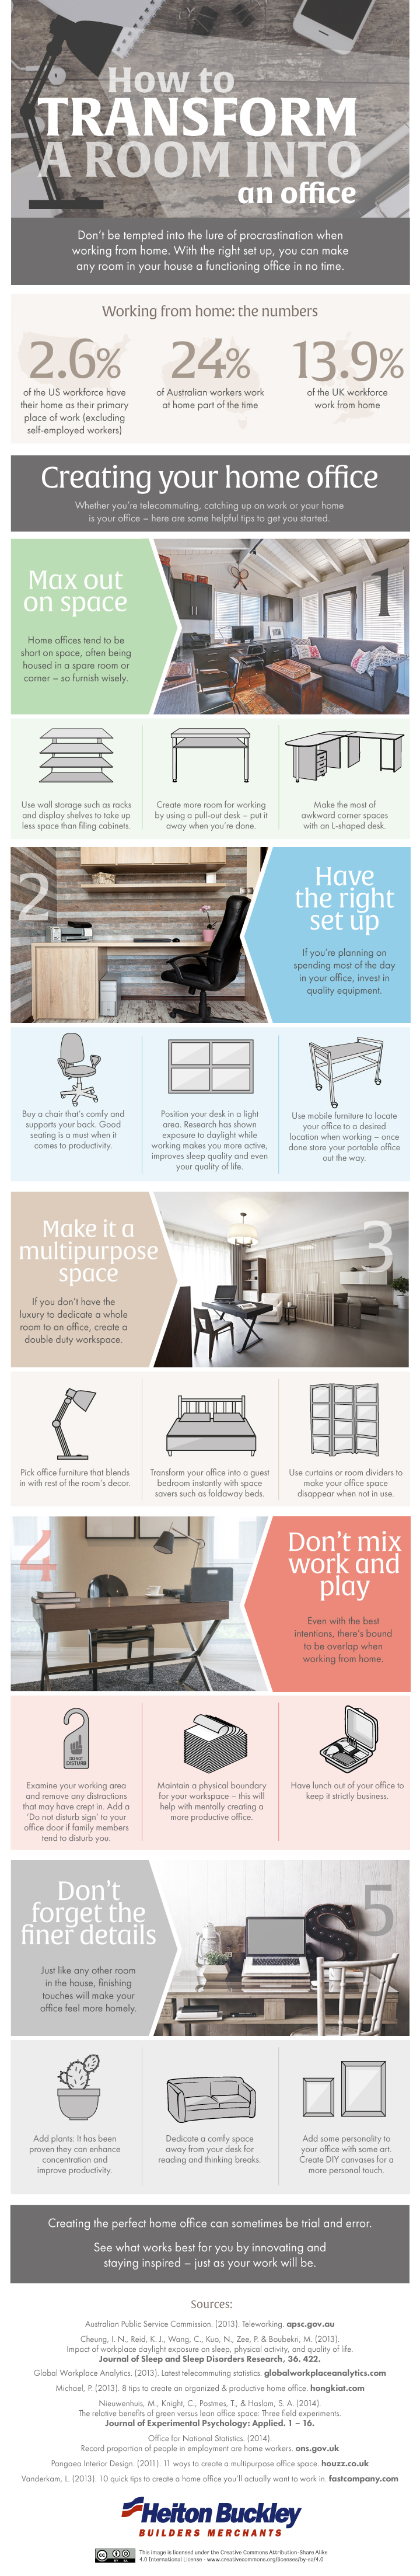 How To Transform A Room Into An Office